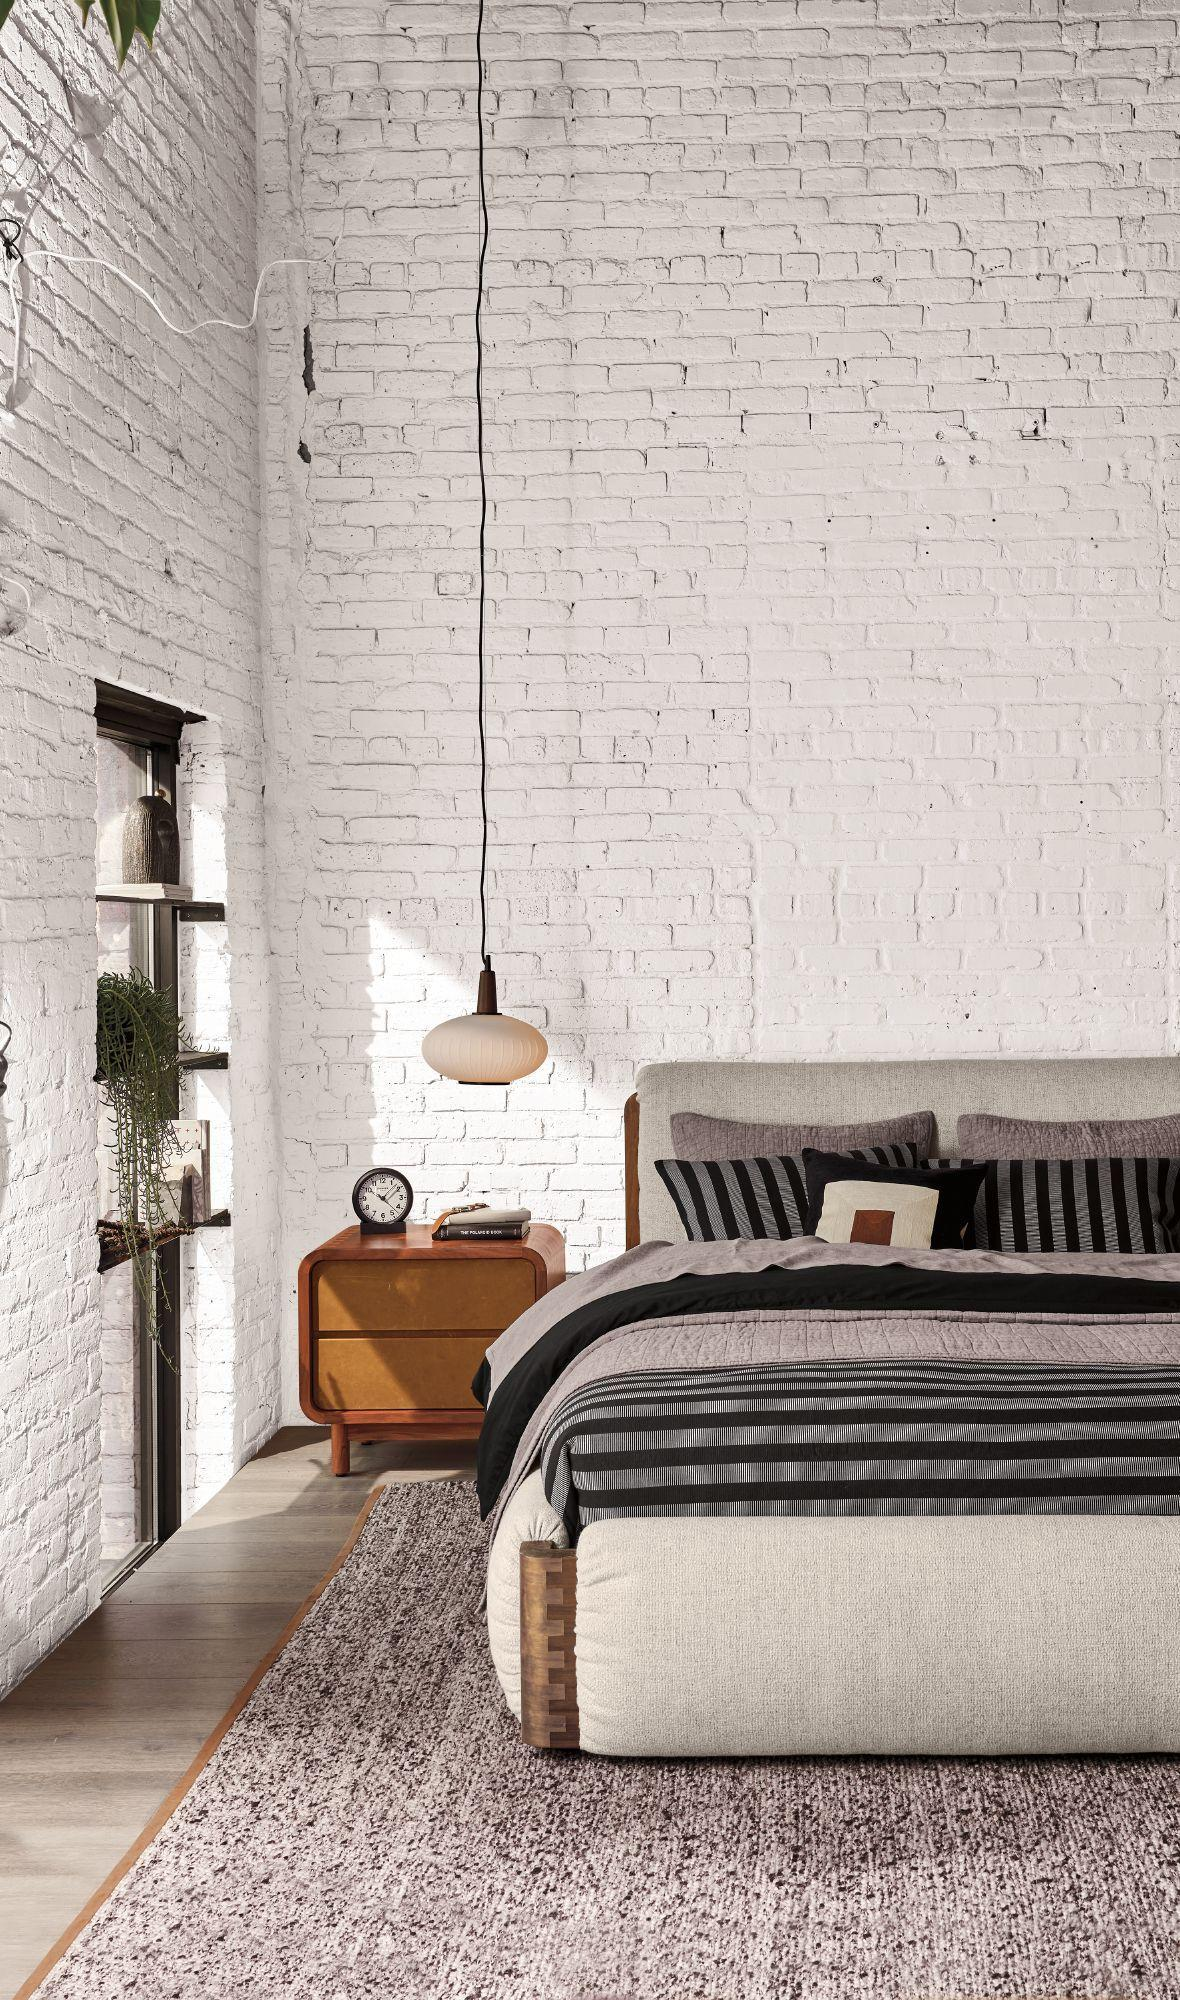 Crate & Barrel's collaboration with Shinola, fresh launches at Hay, and more